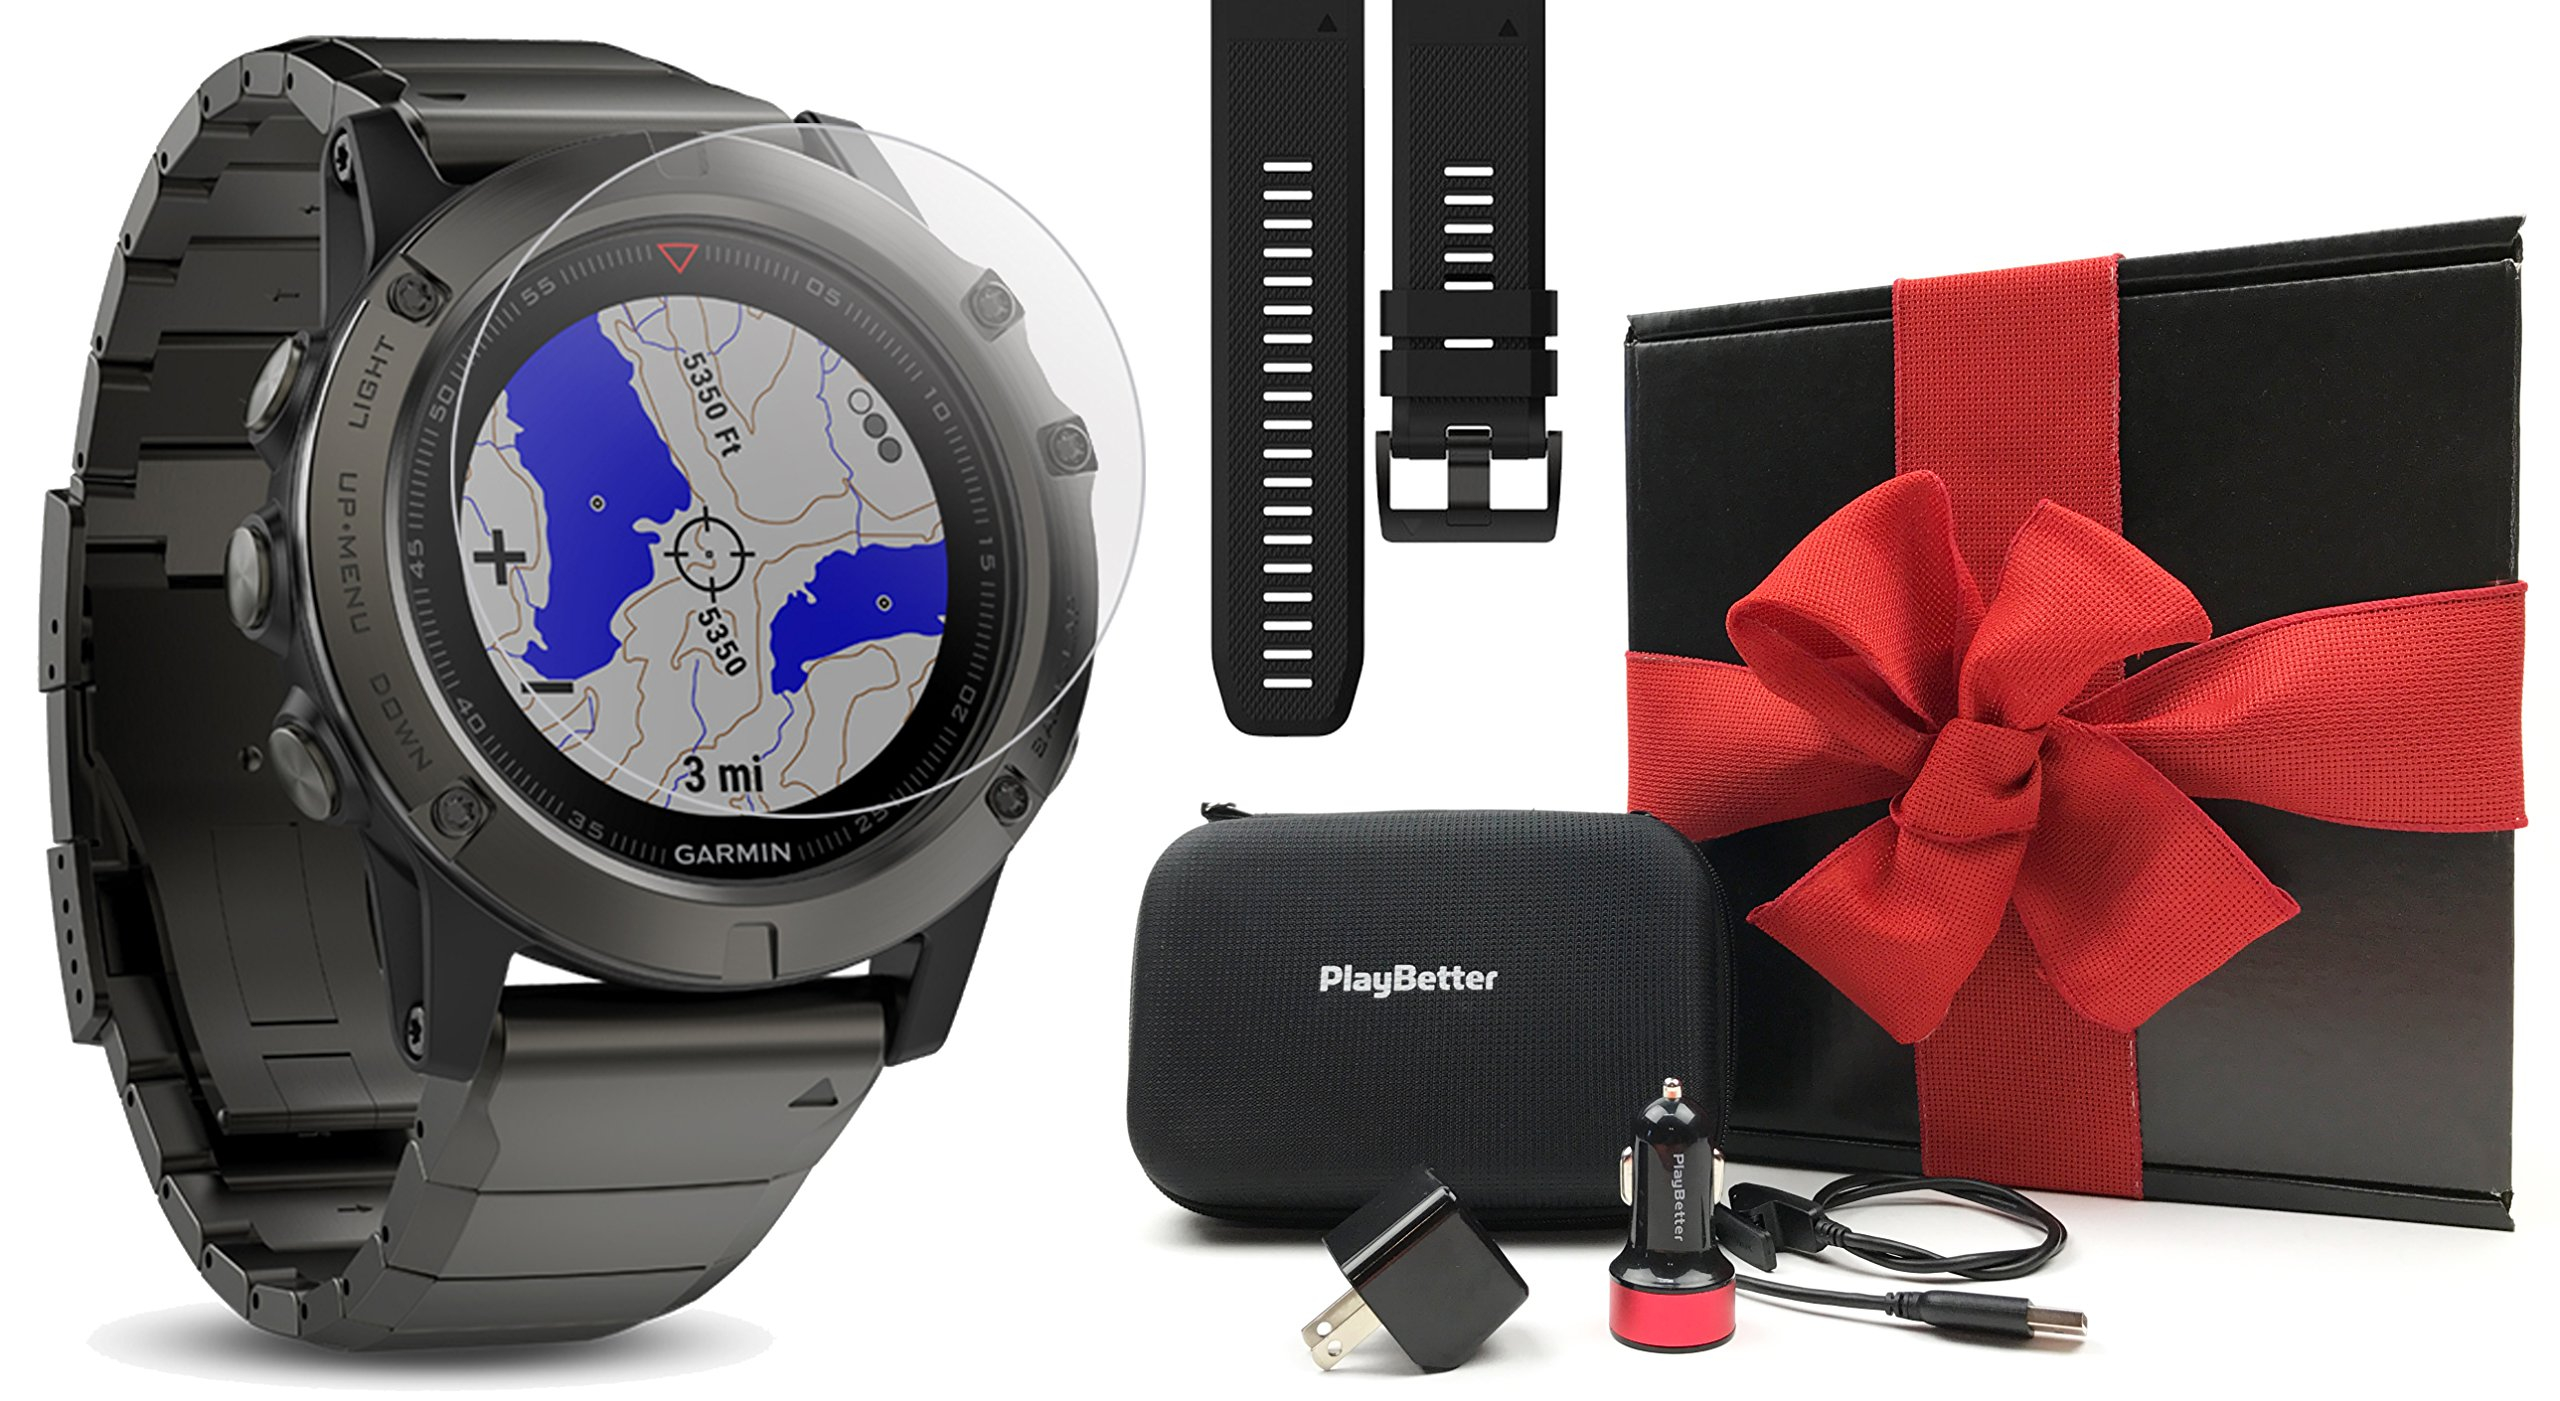 Garmin fenix 5X Sapphire (Slate Gray with Metal Band) GIFT BOX | Bundle: Extra Band (Black), Screen Protector, PlayBetter USB Car/Wall Adapter, Protective Case | Multi-Sport GPS Watch, Wrist-HR, Maps